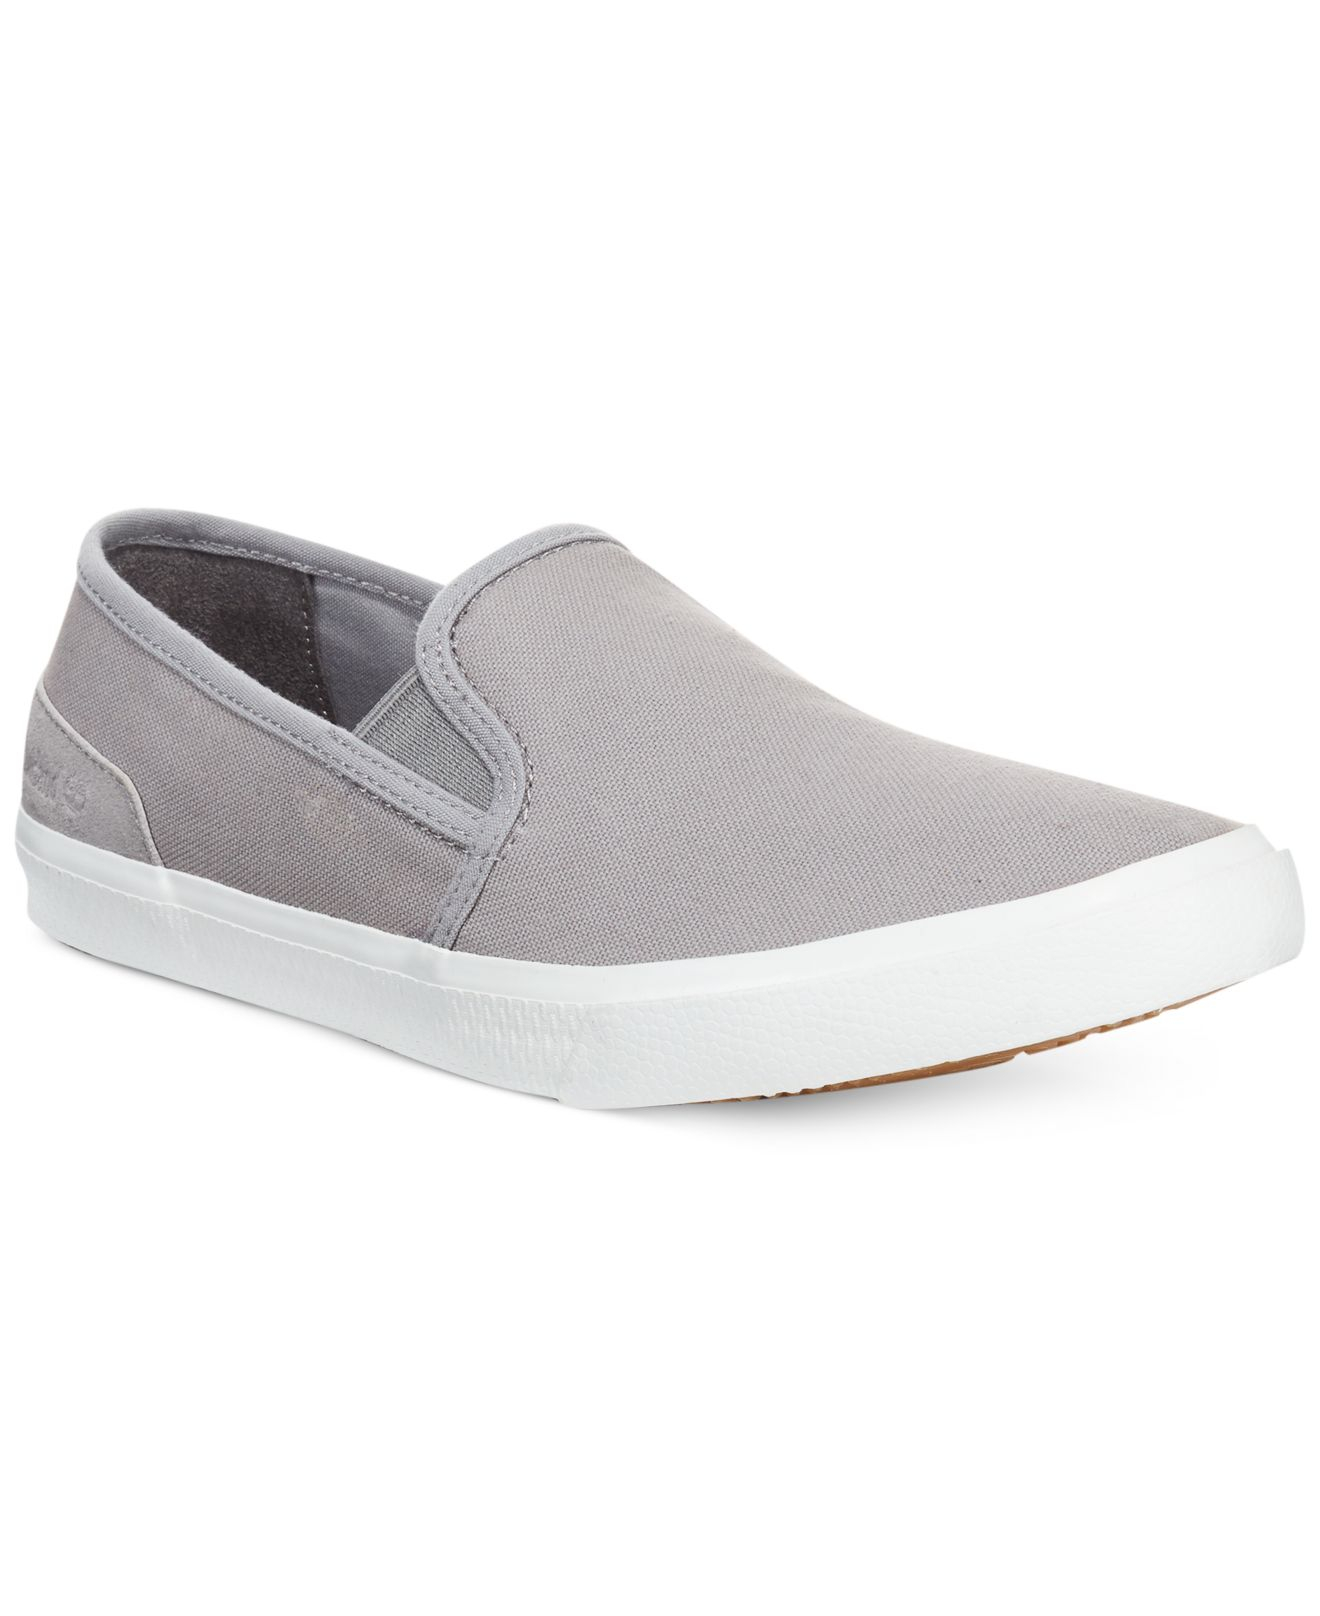 f8c20edff03 Lyst - Timberland Earthkeepers Hookset Camp Slip-on Sneakers in Gray ...